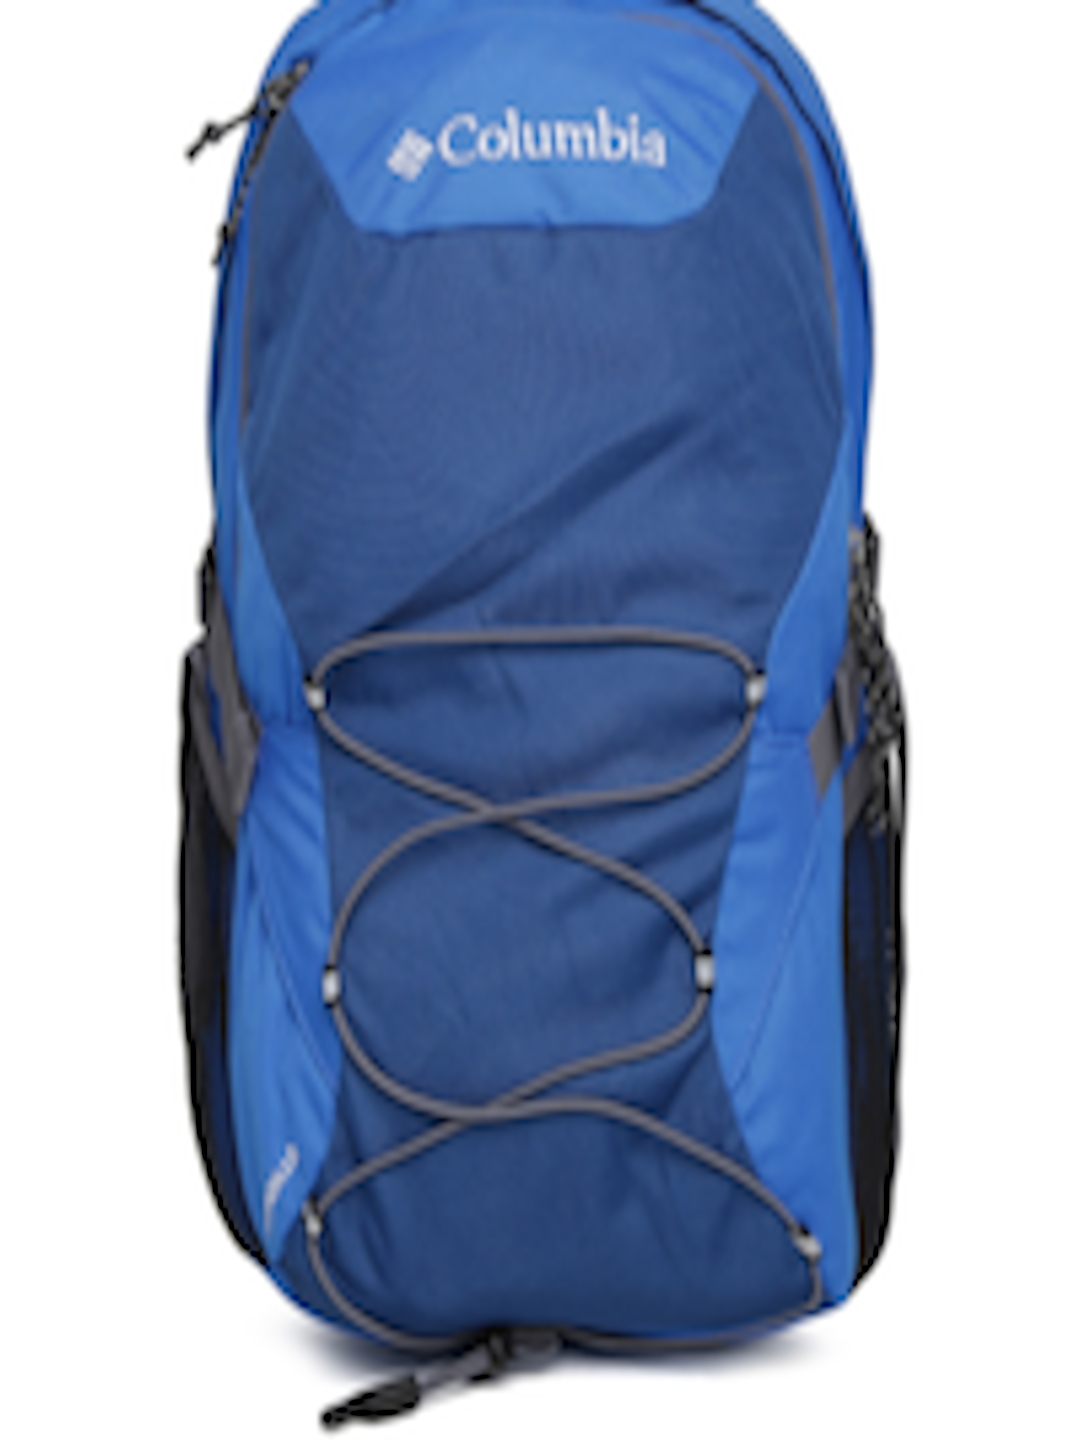 Buy Columbia Unisex Blue Packadillo Laptop Outdoor